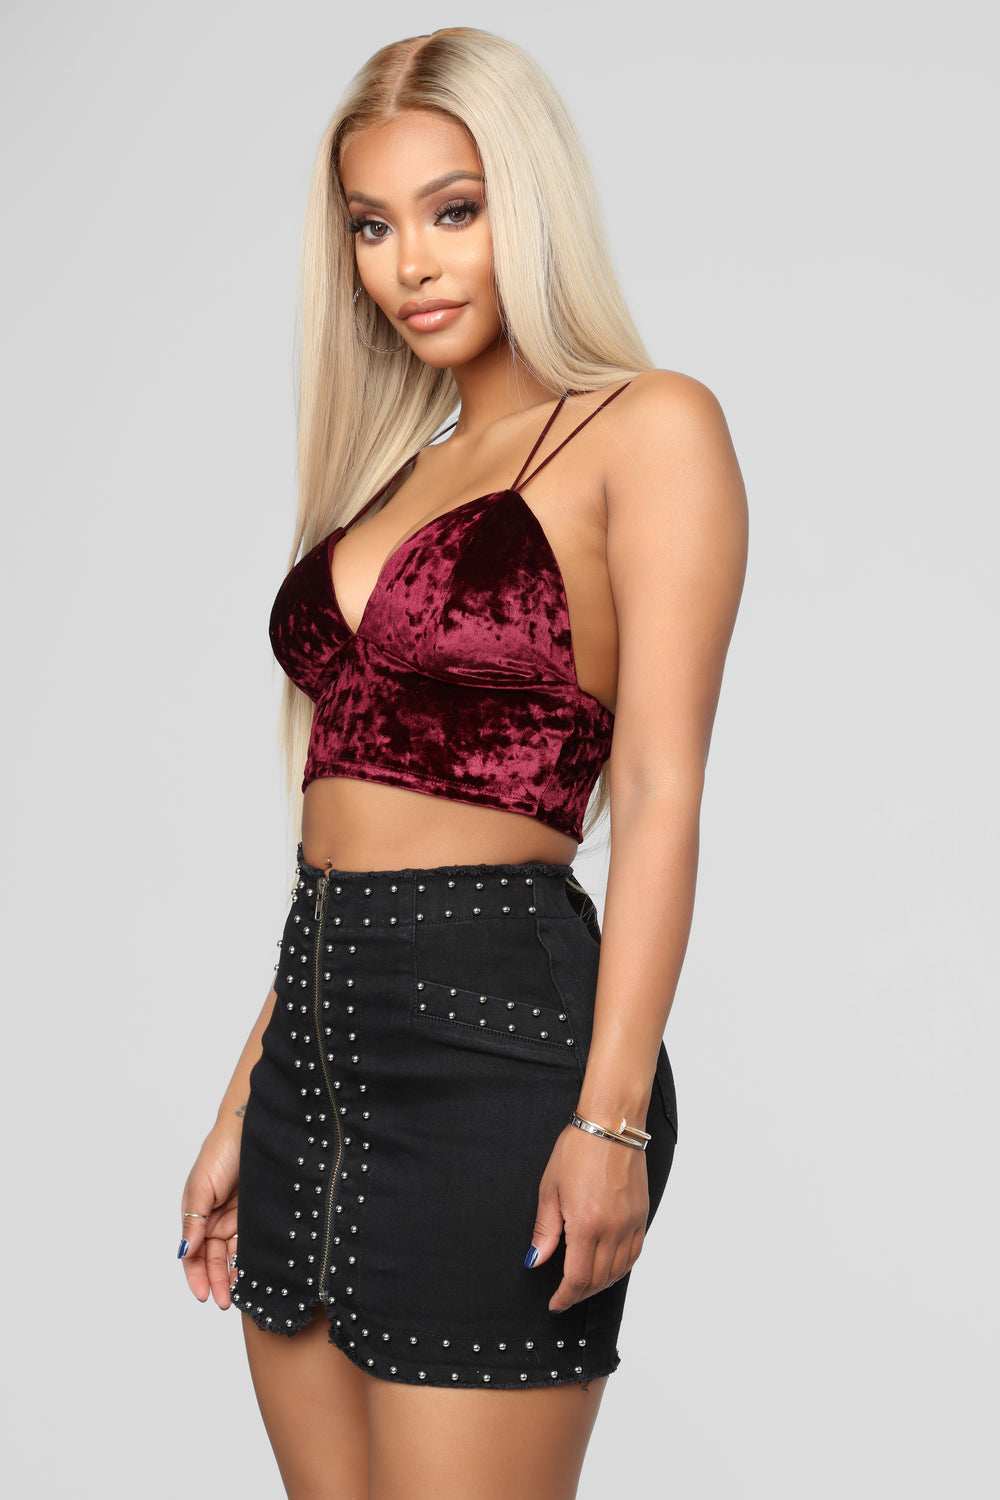 Crushing Hearts Crop Top - Merlot